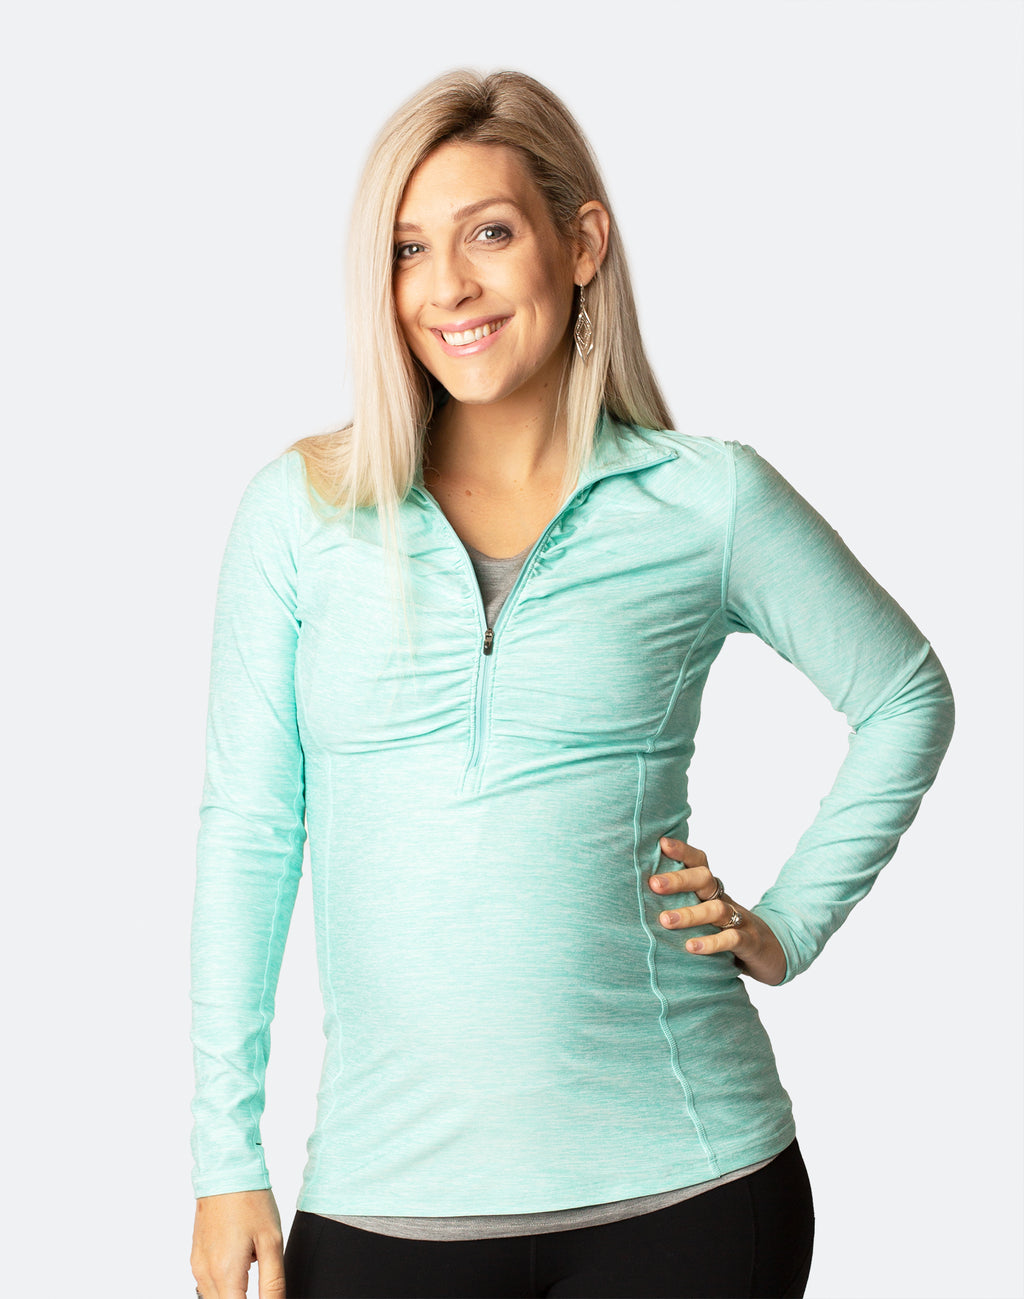 Breastfeeding Top - Aspire Top Neo